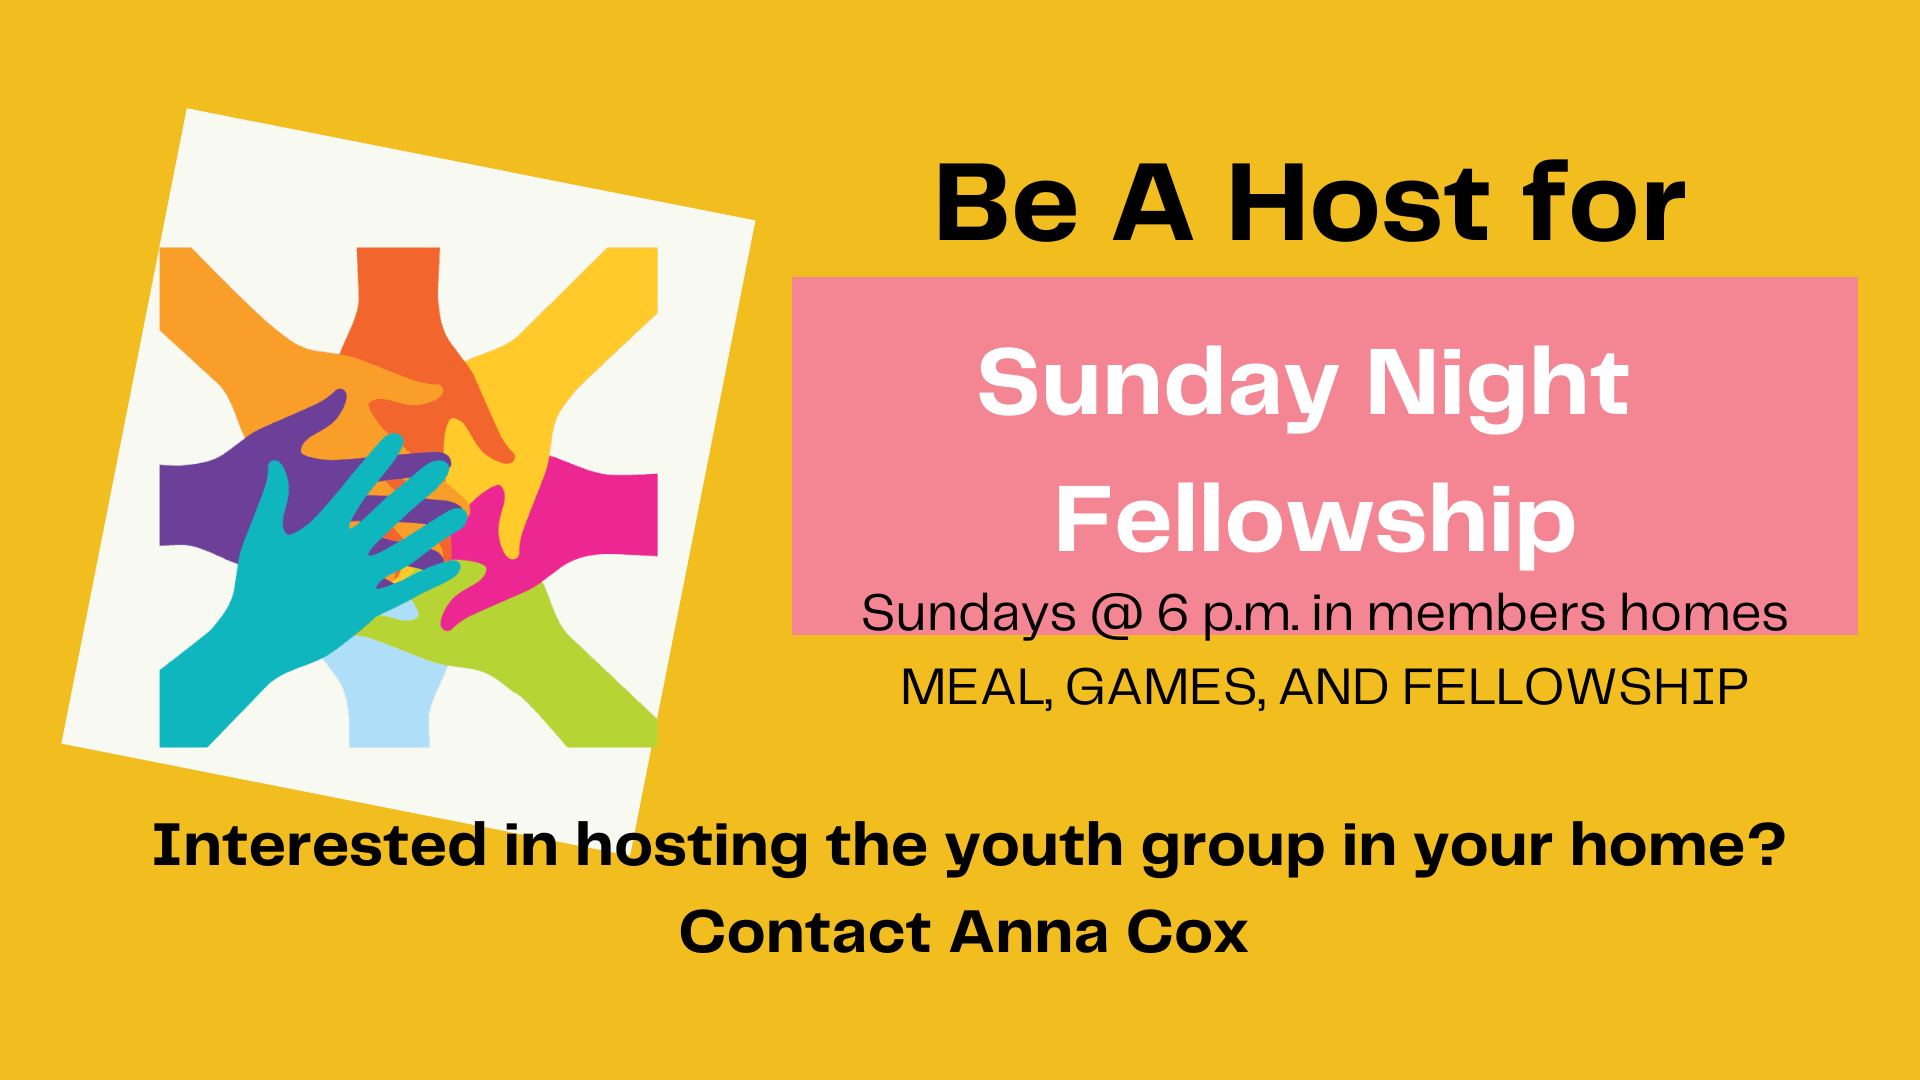 Host Our Youth for Sunday Night Fellowship